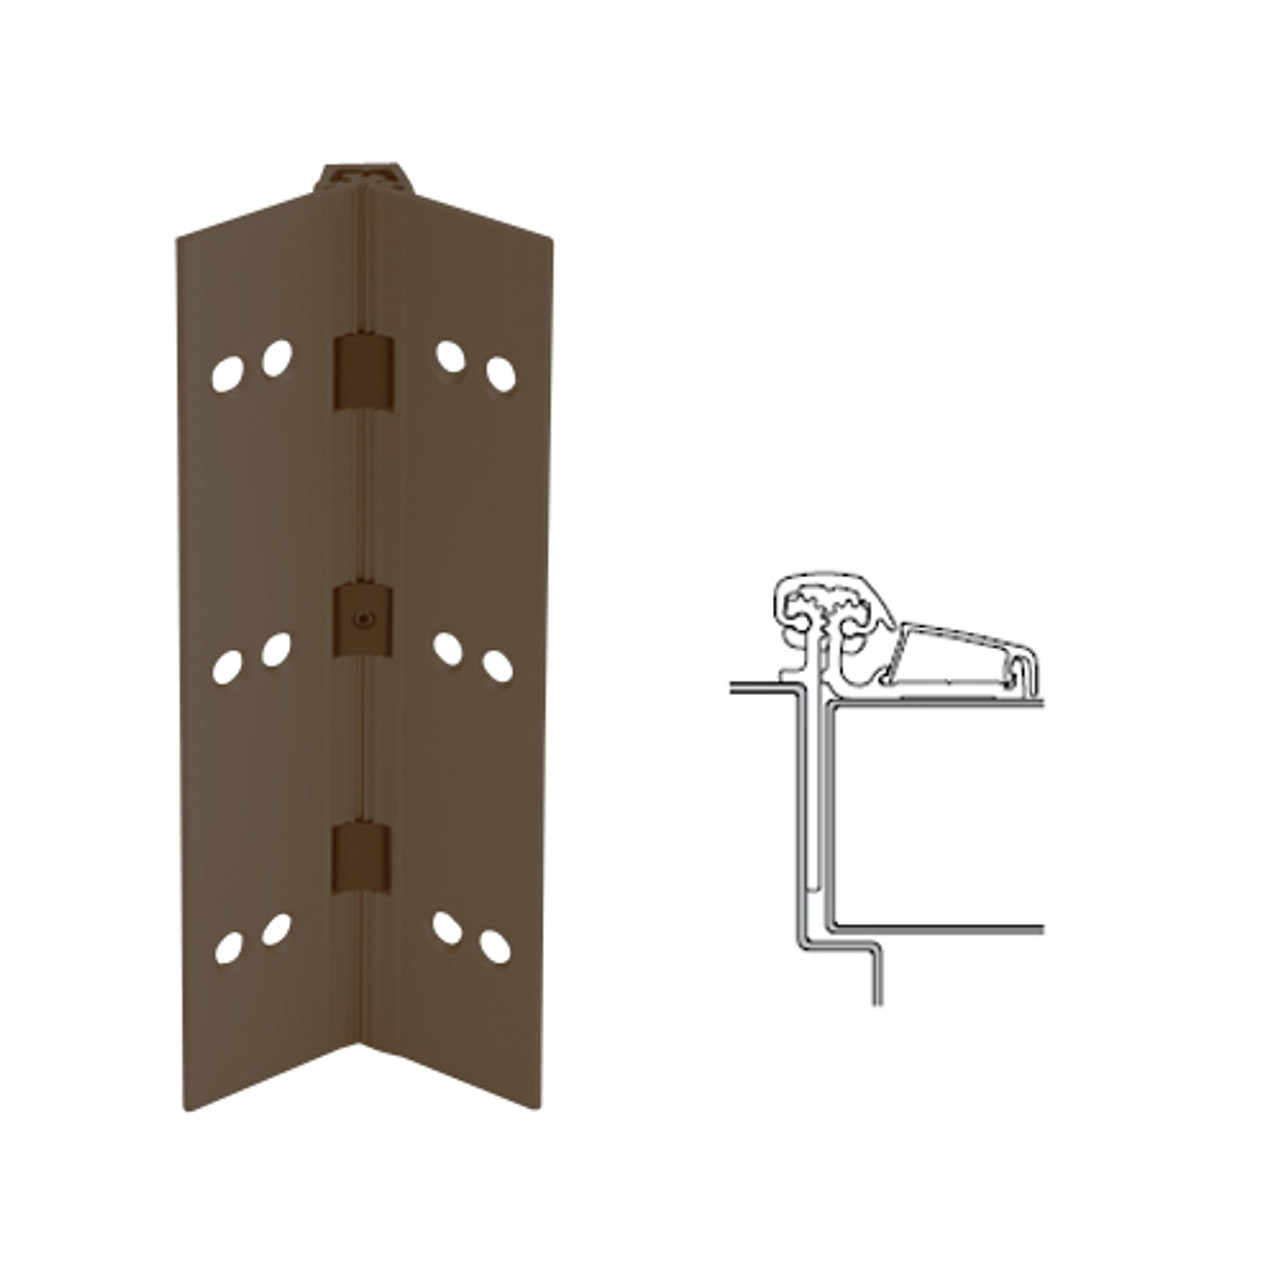 053XY-313AN-95-TFWD IVES Adjustable Half Surface Continuous Geared Hinges with Thread Forming Screws in Dark Bronze Anodized